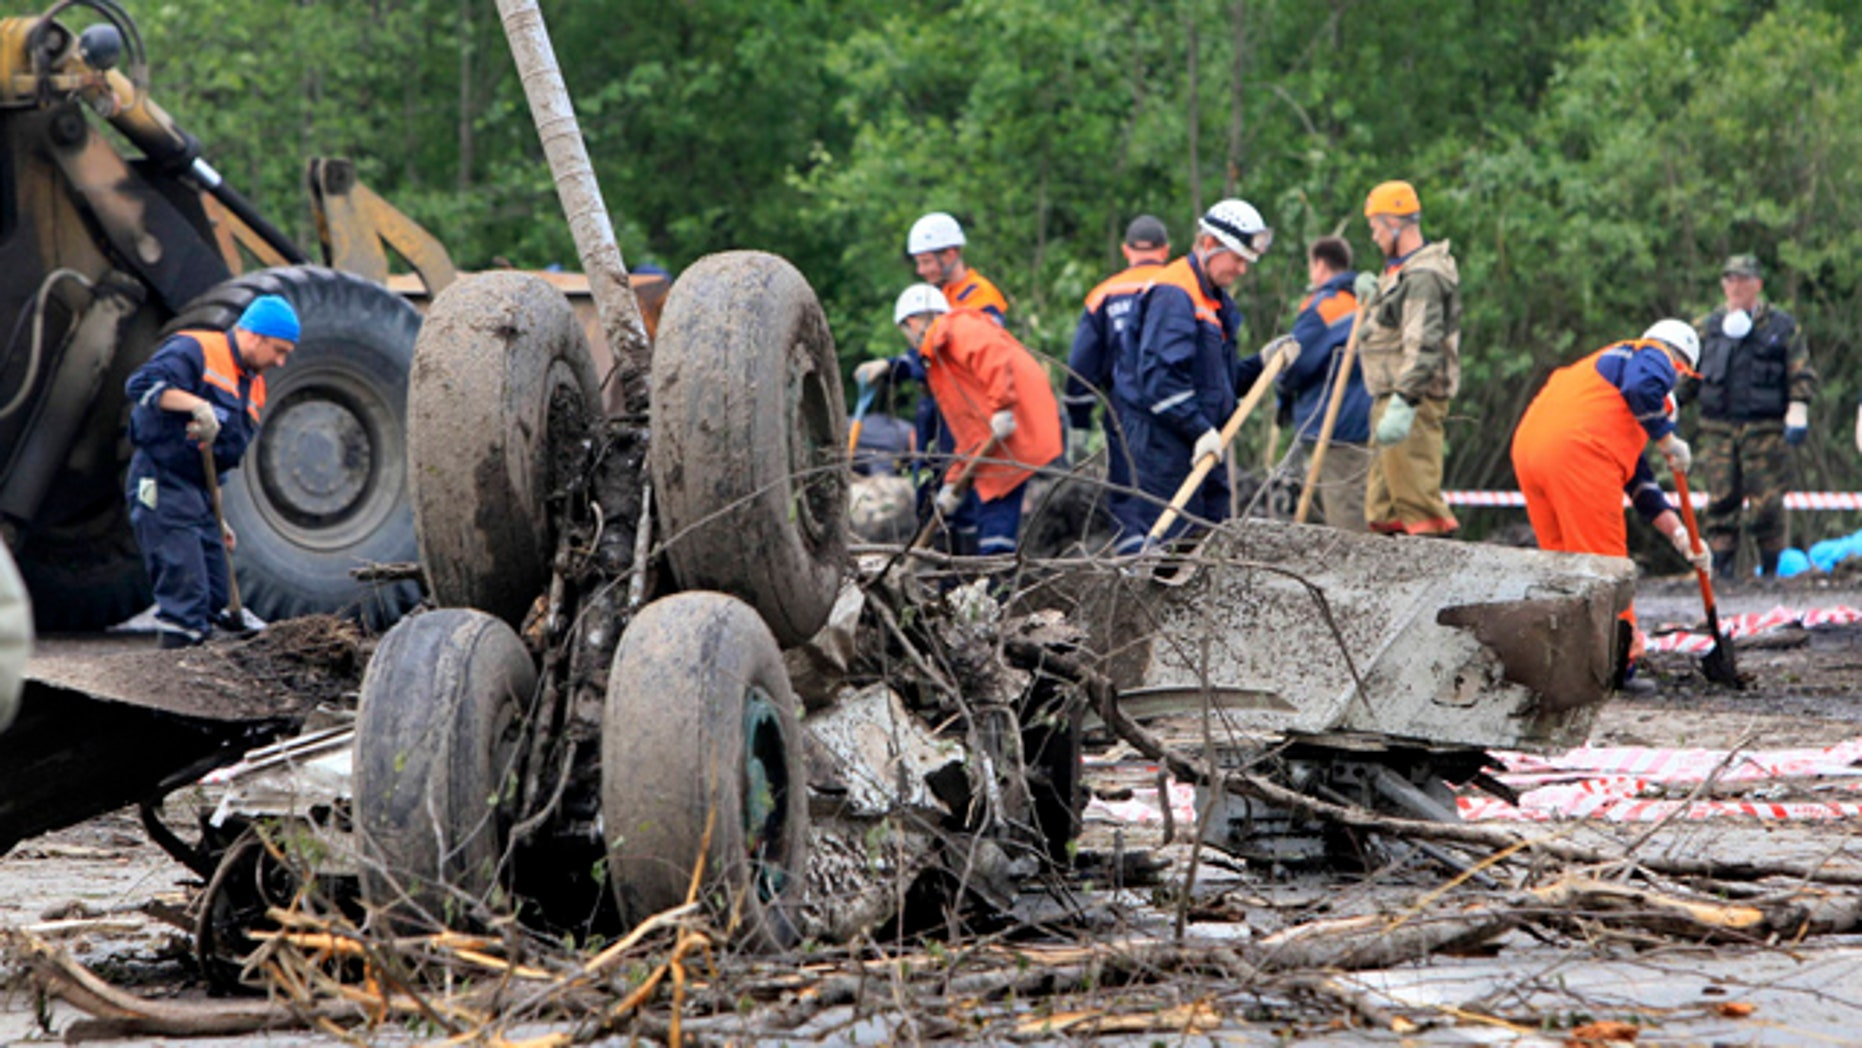 June 21: Emergency workers and investigators search wreckage of Tu-134 plane, belonging to the RusAir airline, near the city of Petrozavodsk.